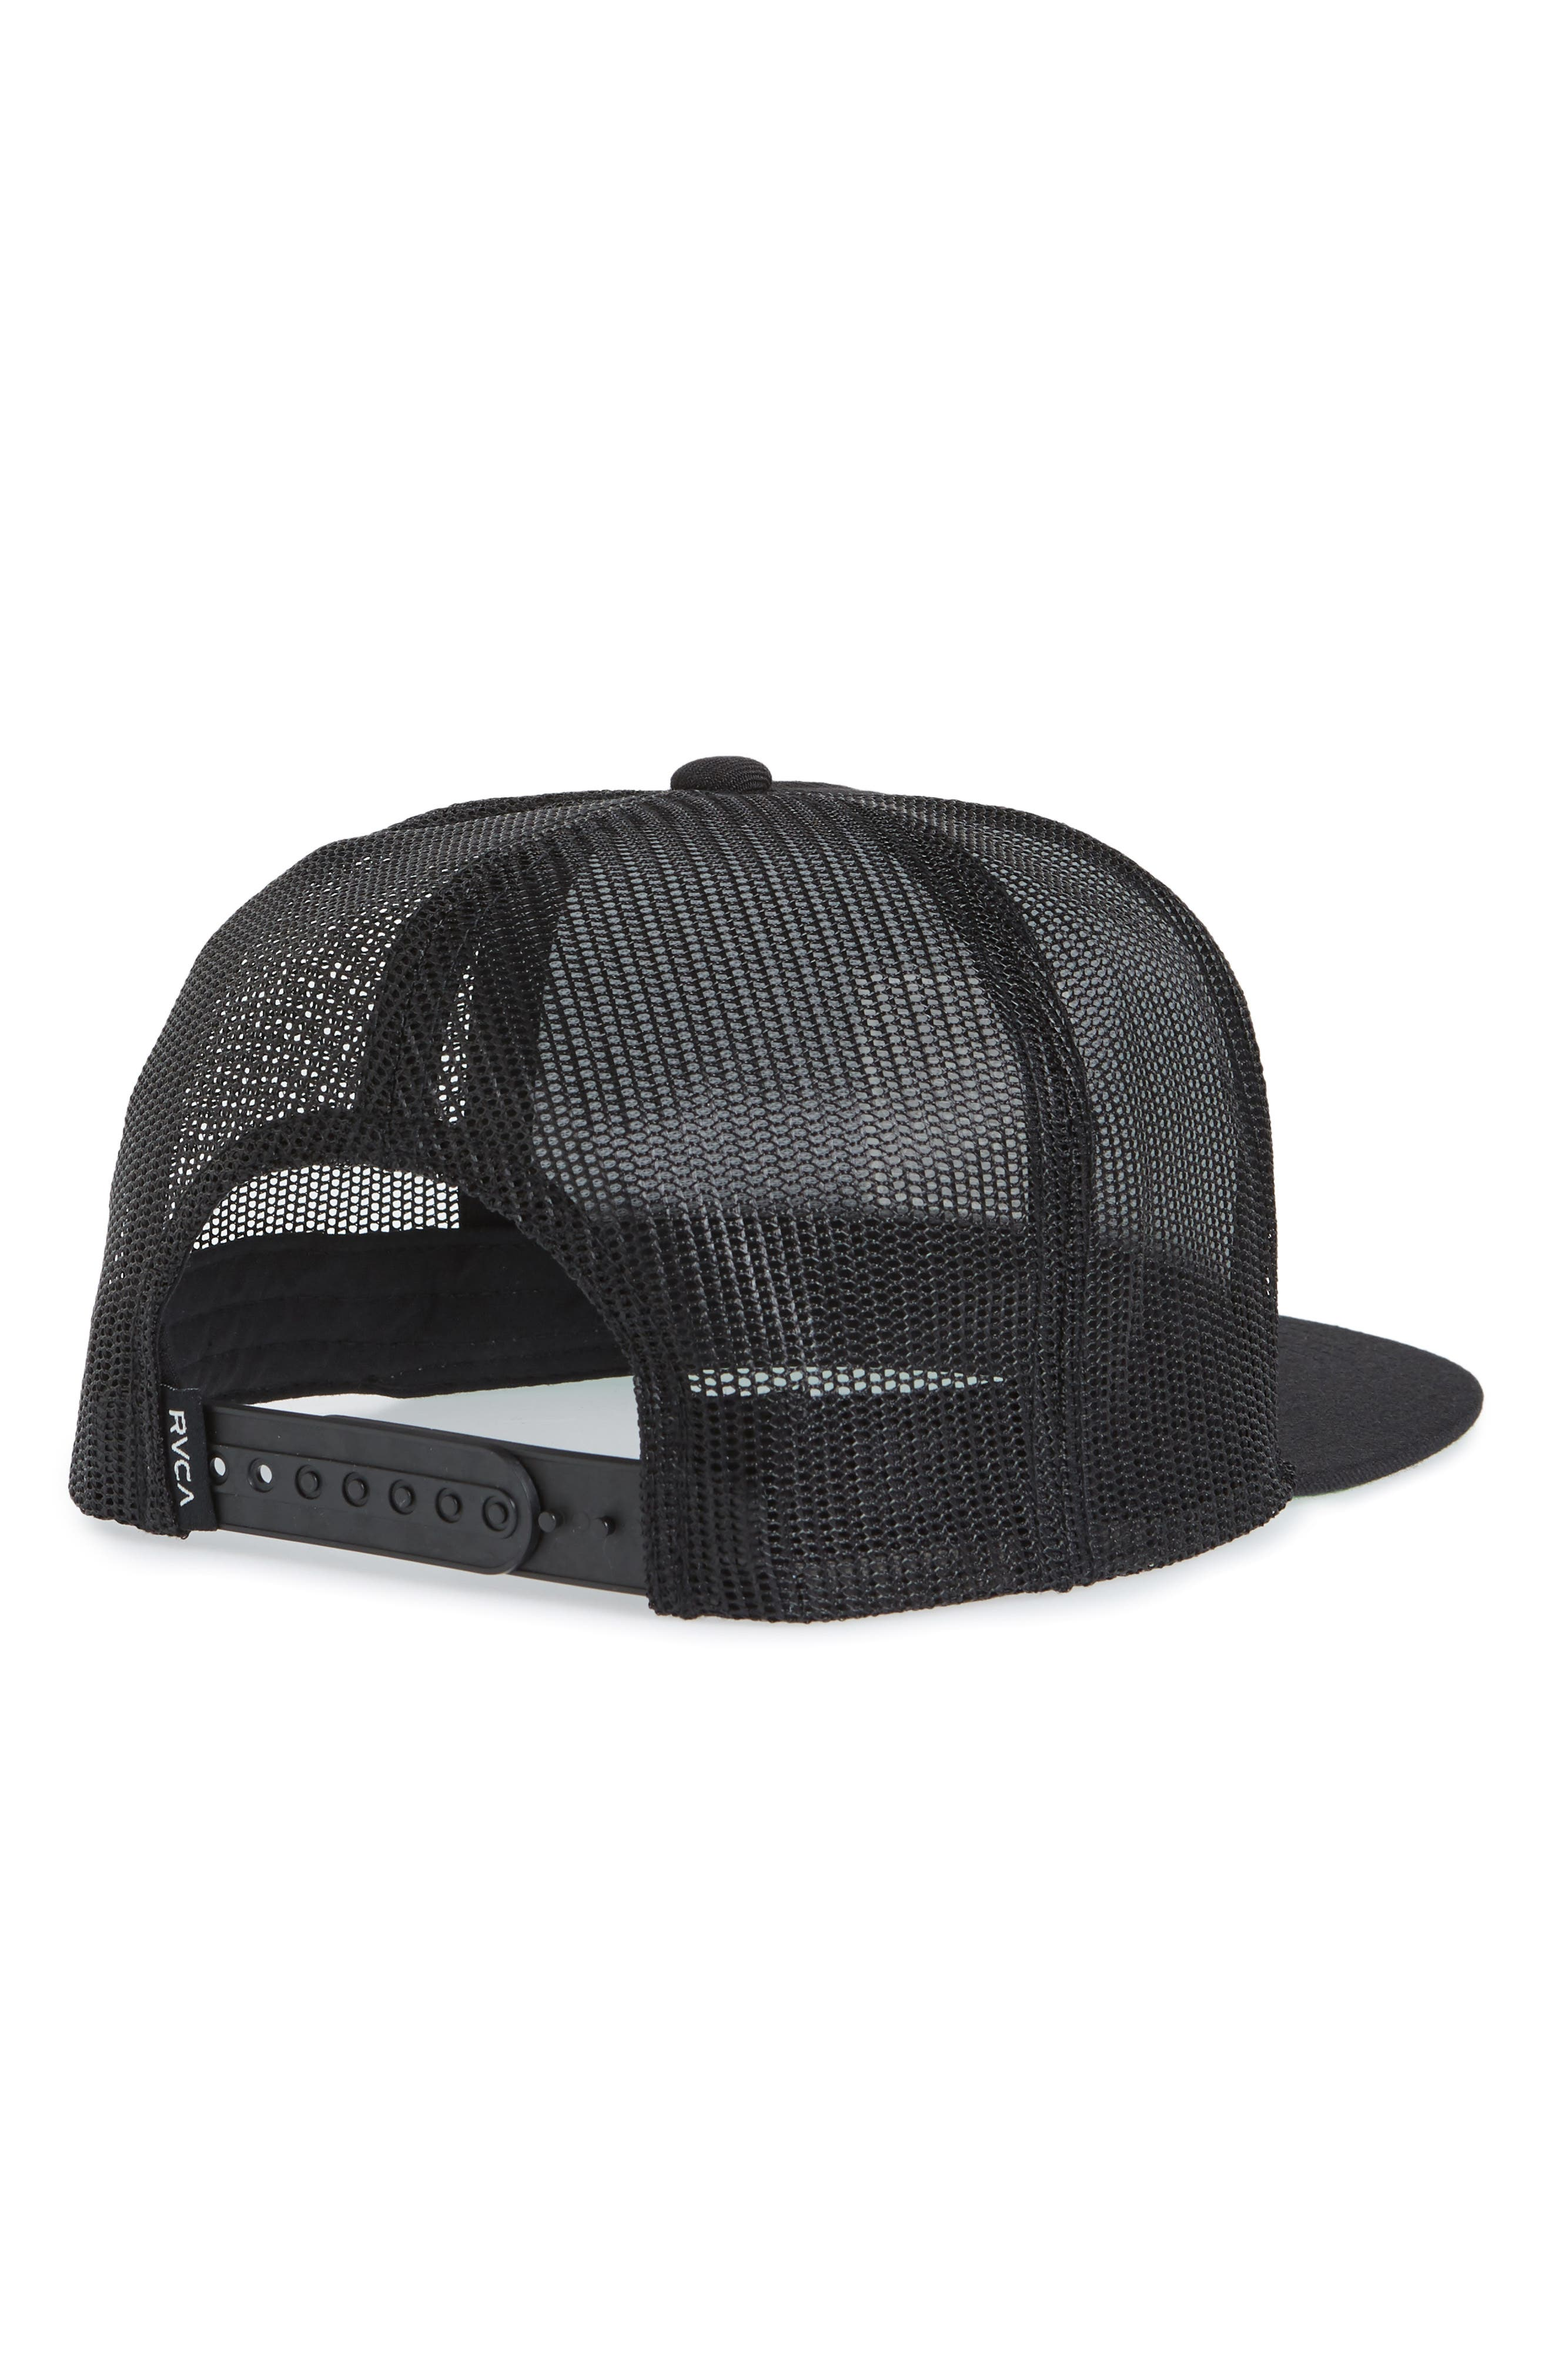 RVCA, VA All the Way Trucker Hat, Alternate thumbnail 2, color, BLACK